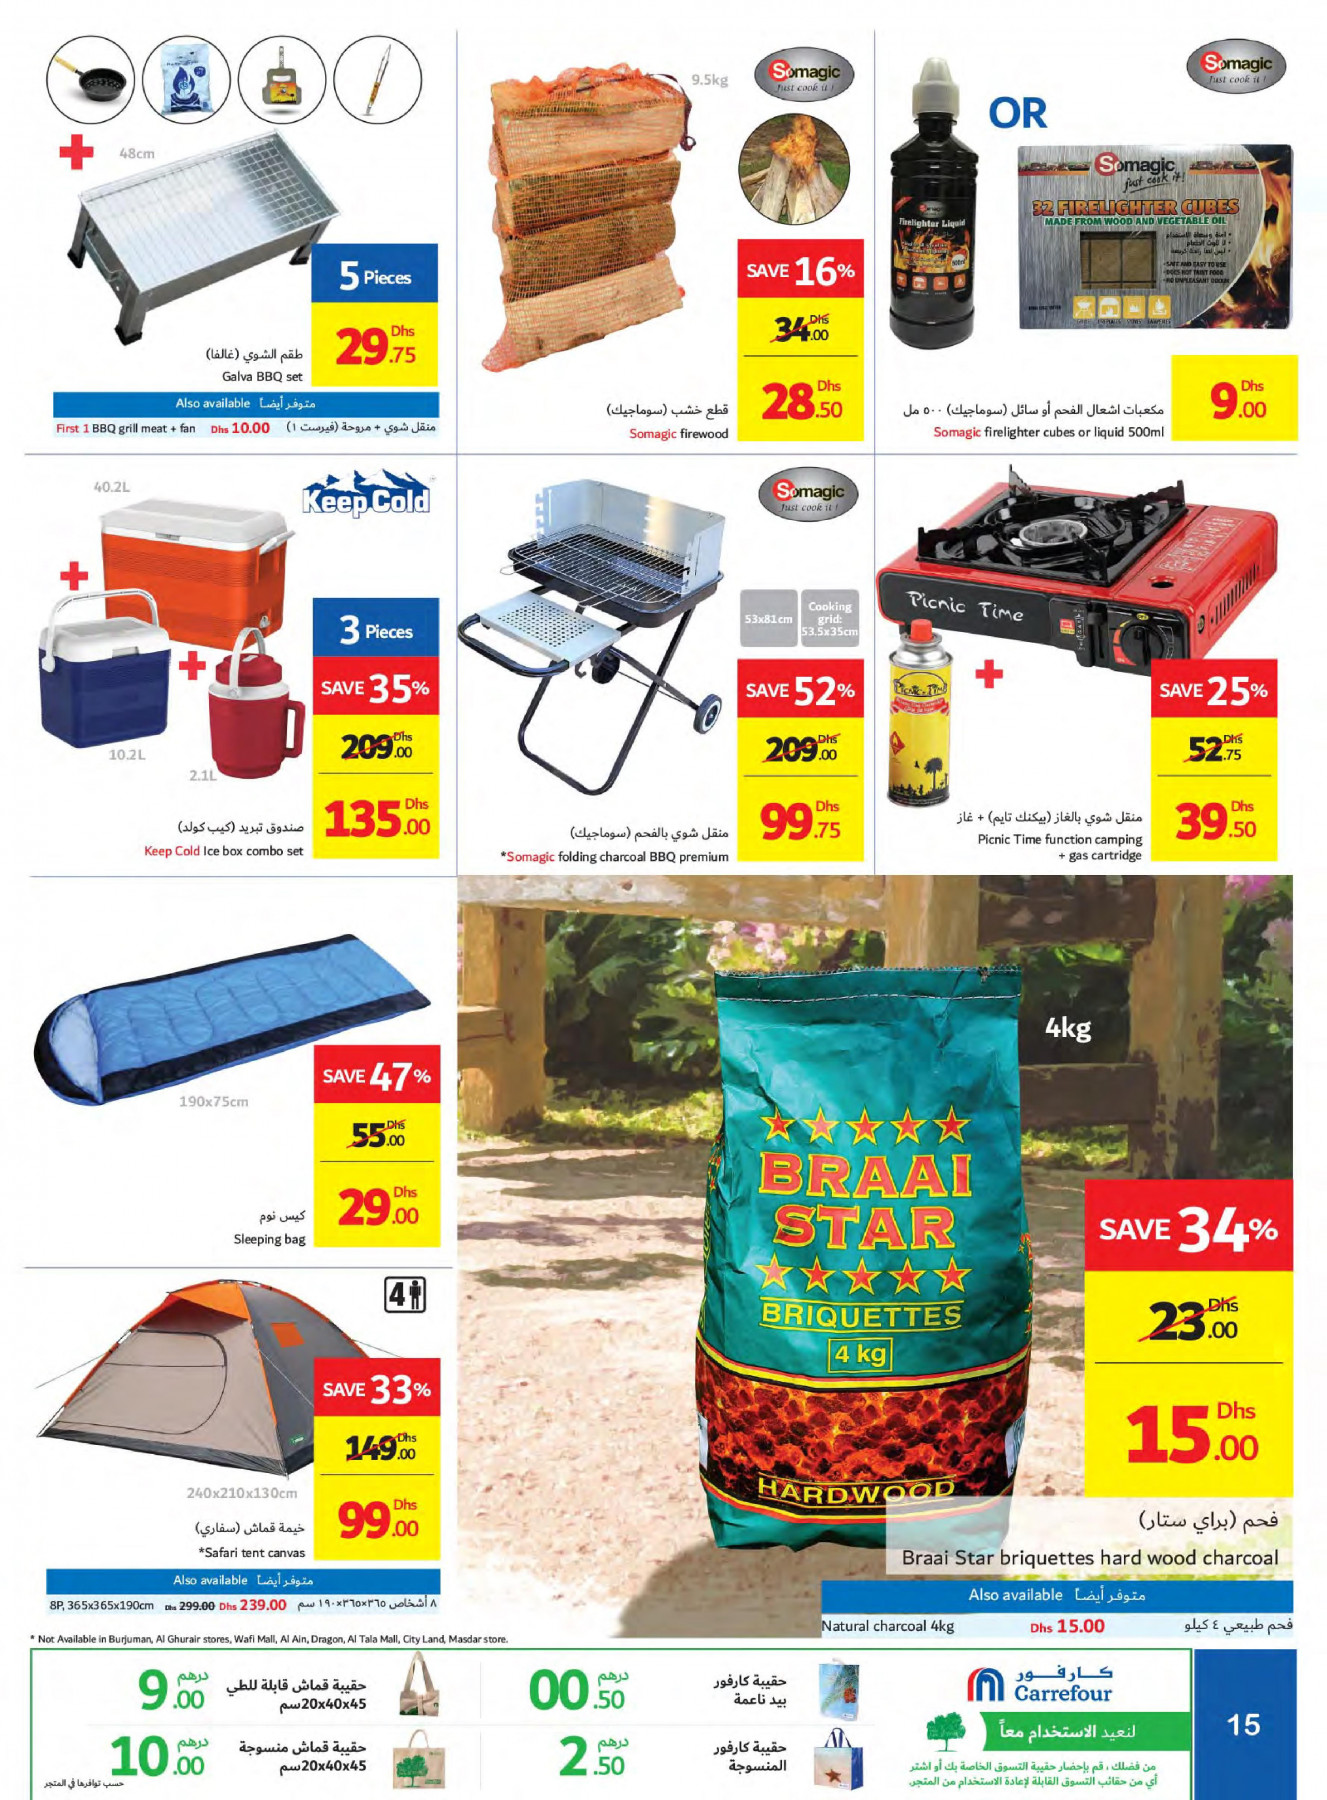 Eid Adha Mubarak Offers from Carrefour until 17th August - Carrefour